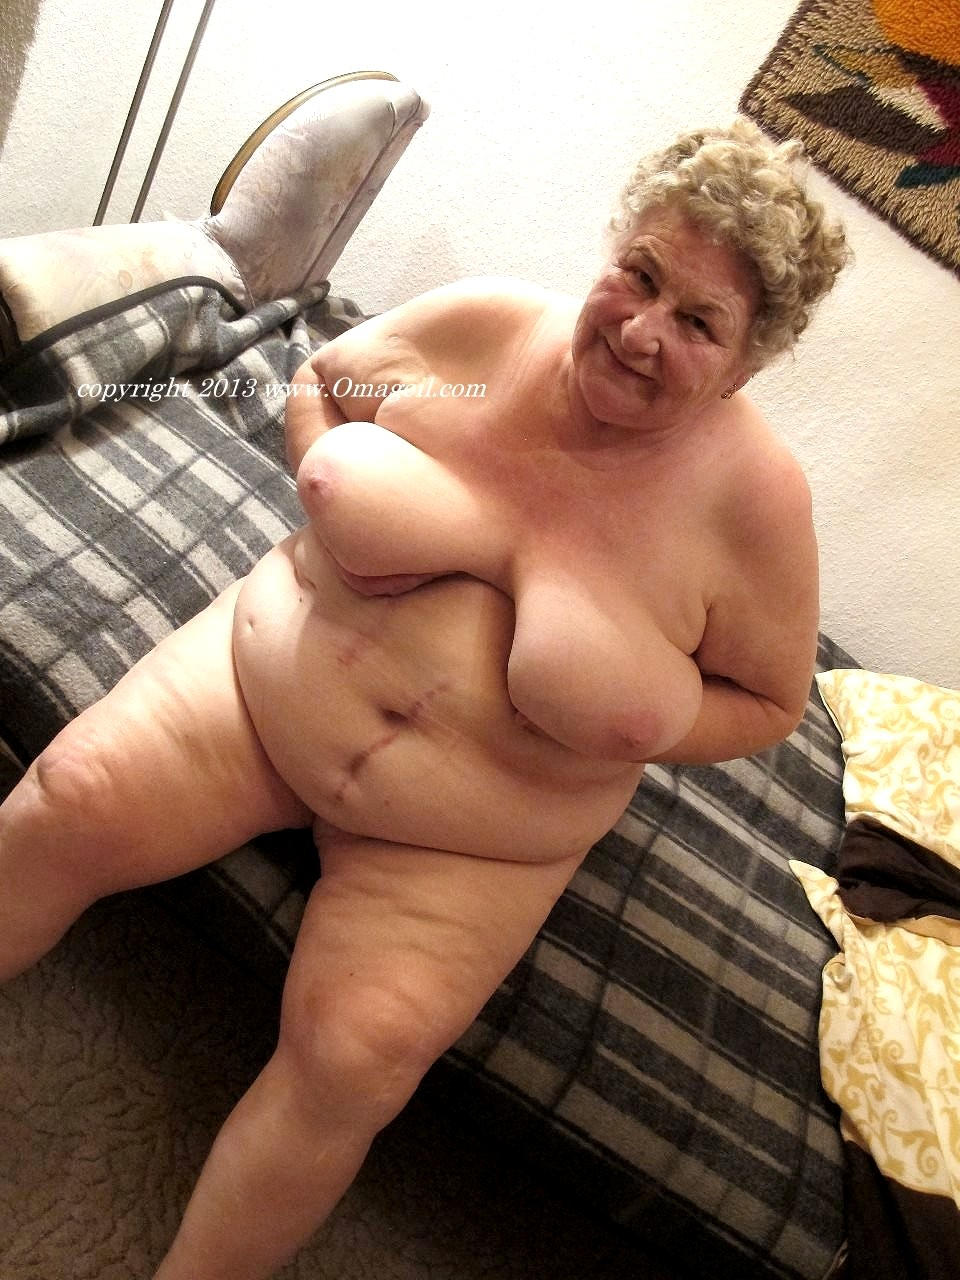 sexchat cam oma sex contact